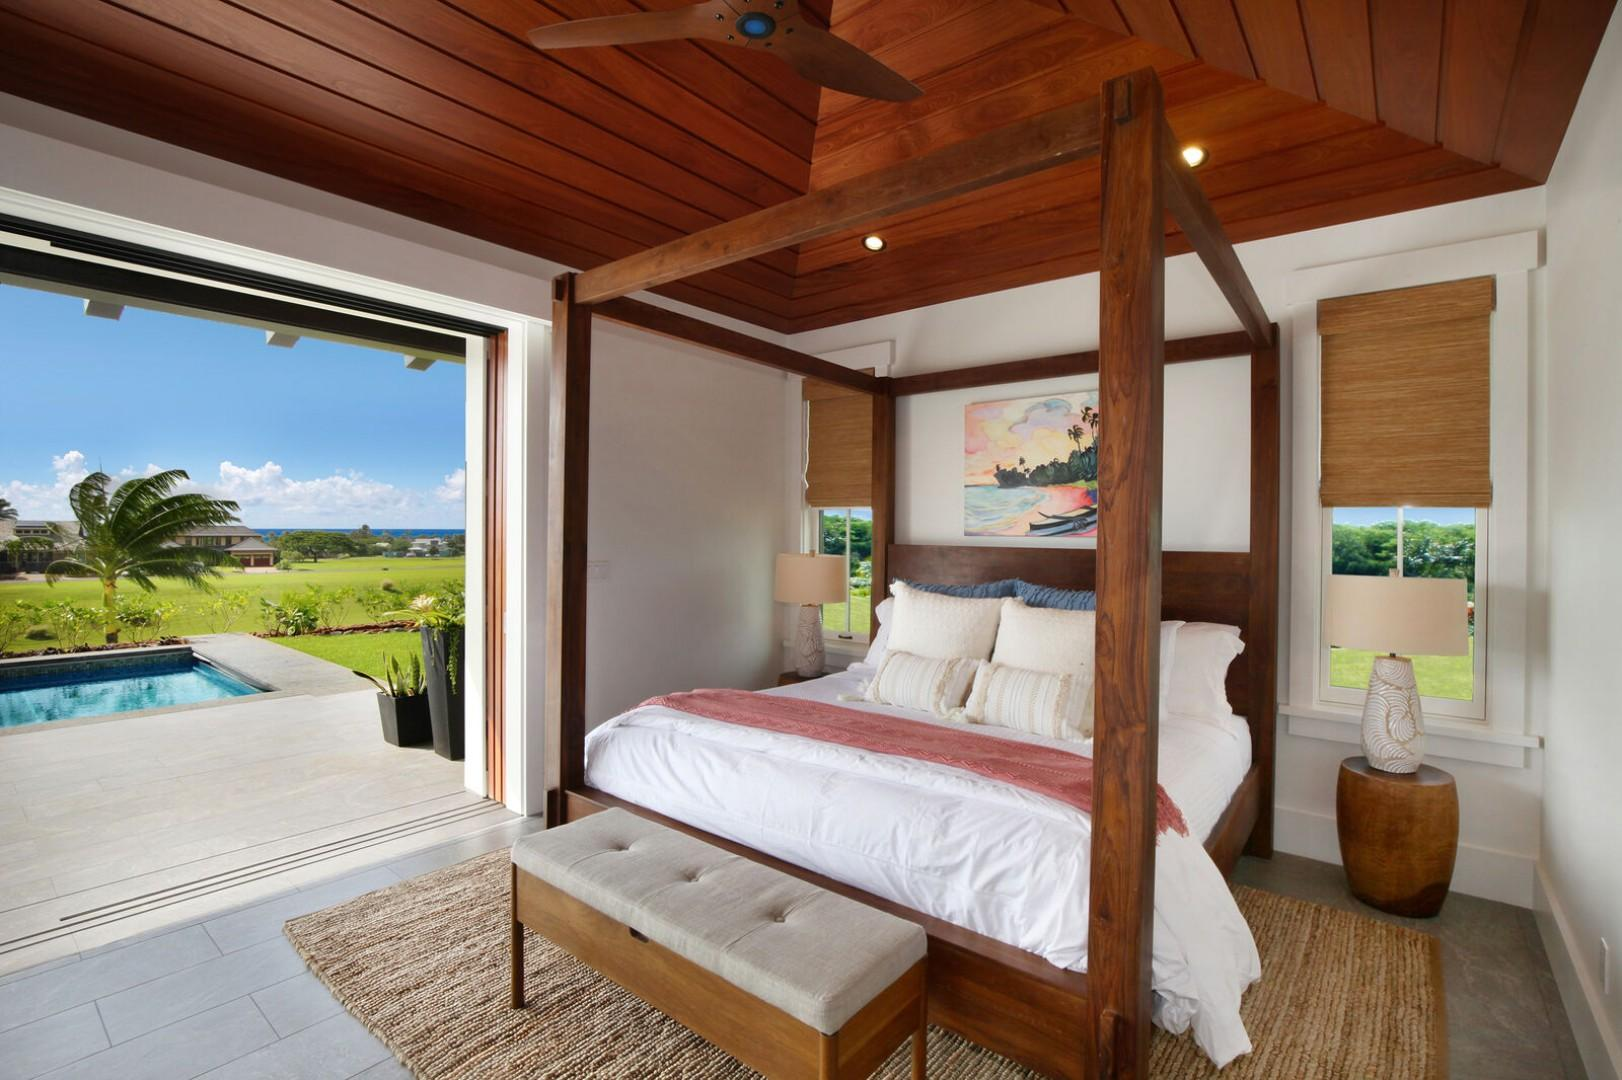 Master bedroom opens to lanai with ocean views